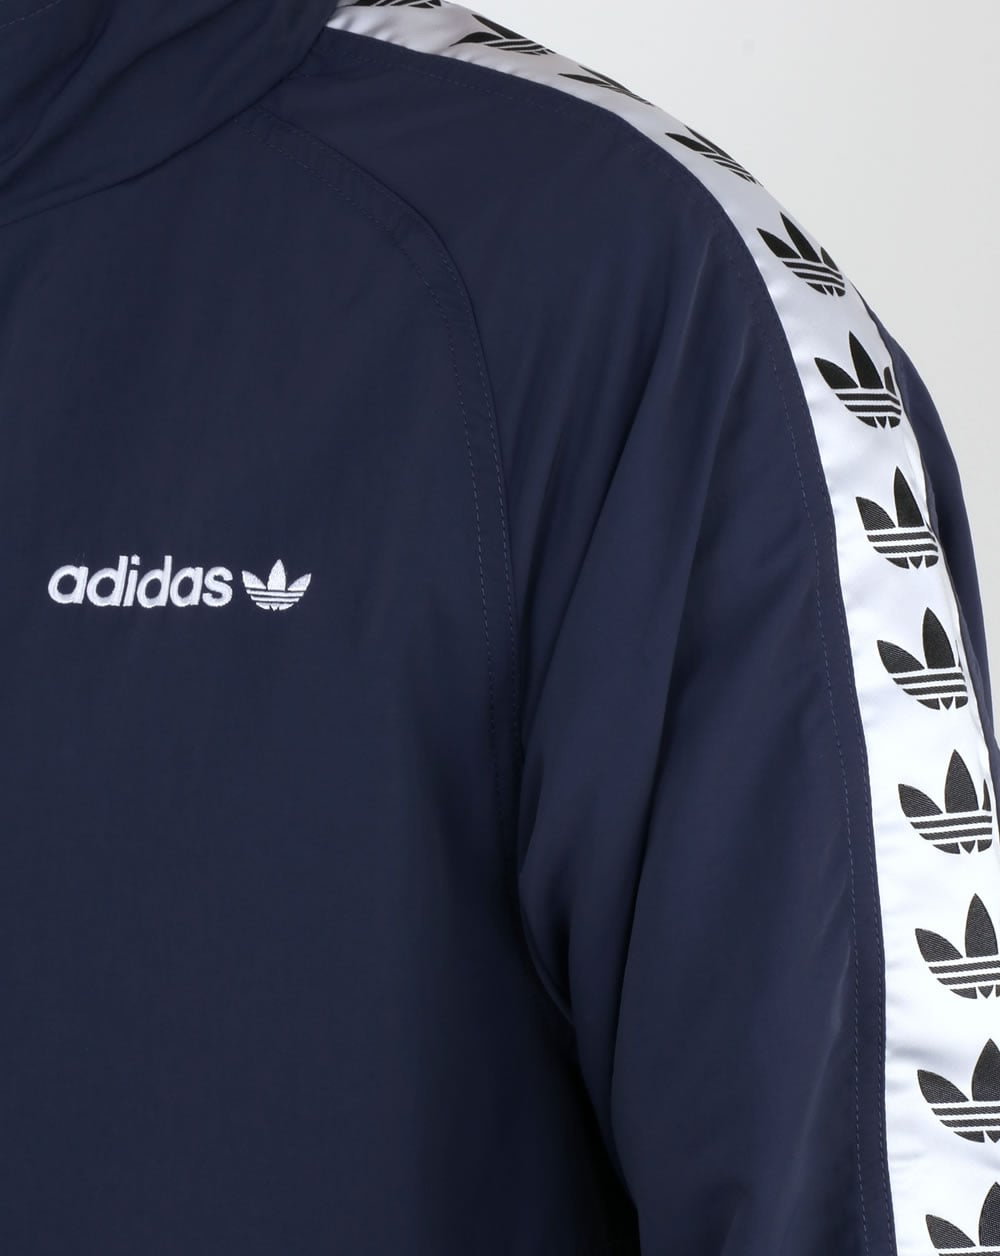 adidas Originals Jacket TNT Tape Windbreaker BlackWhite